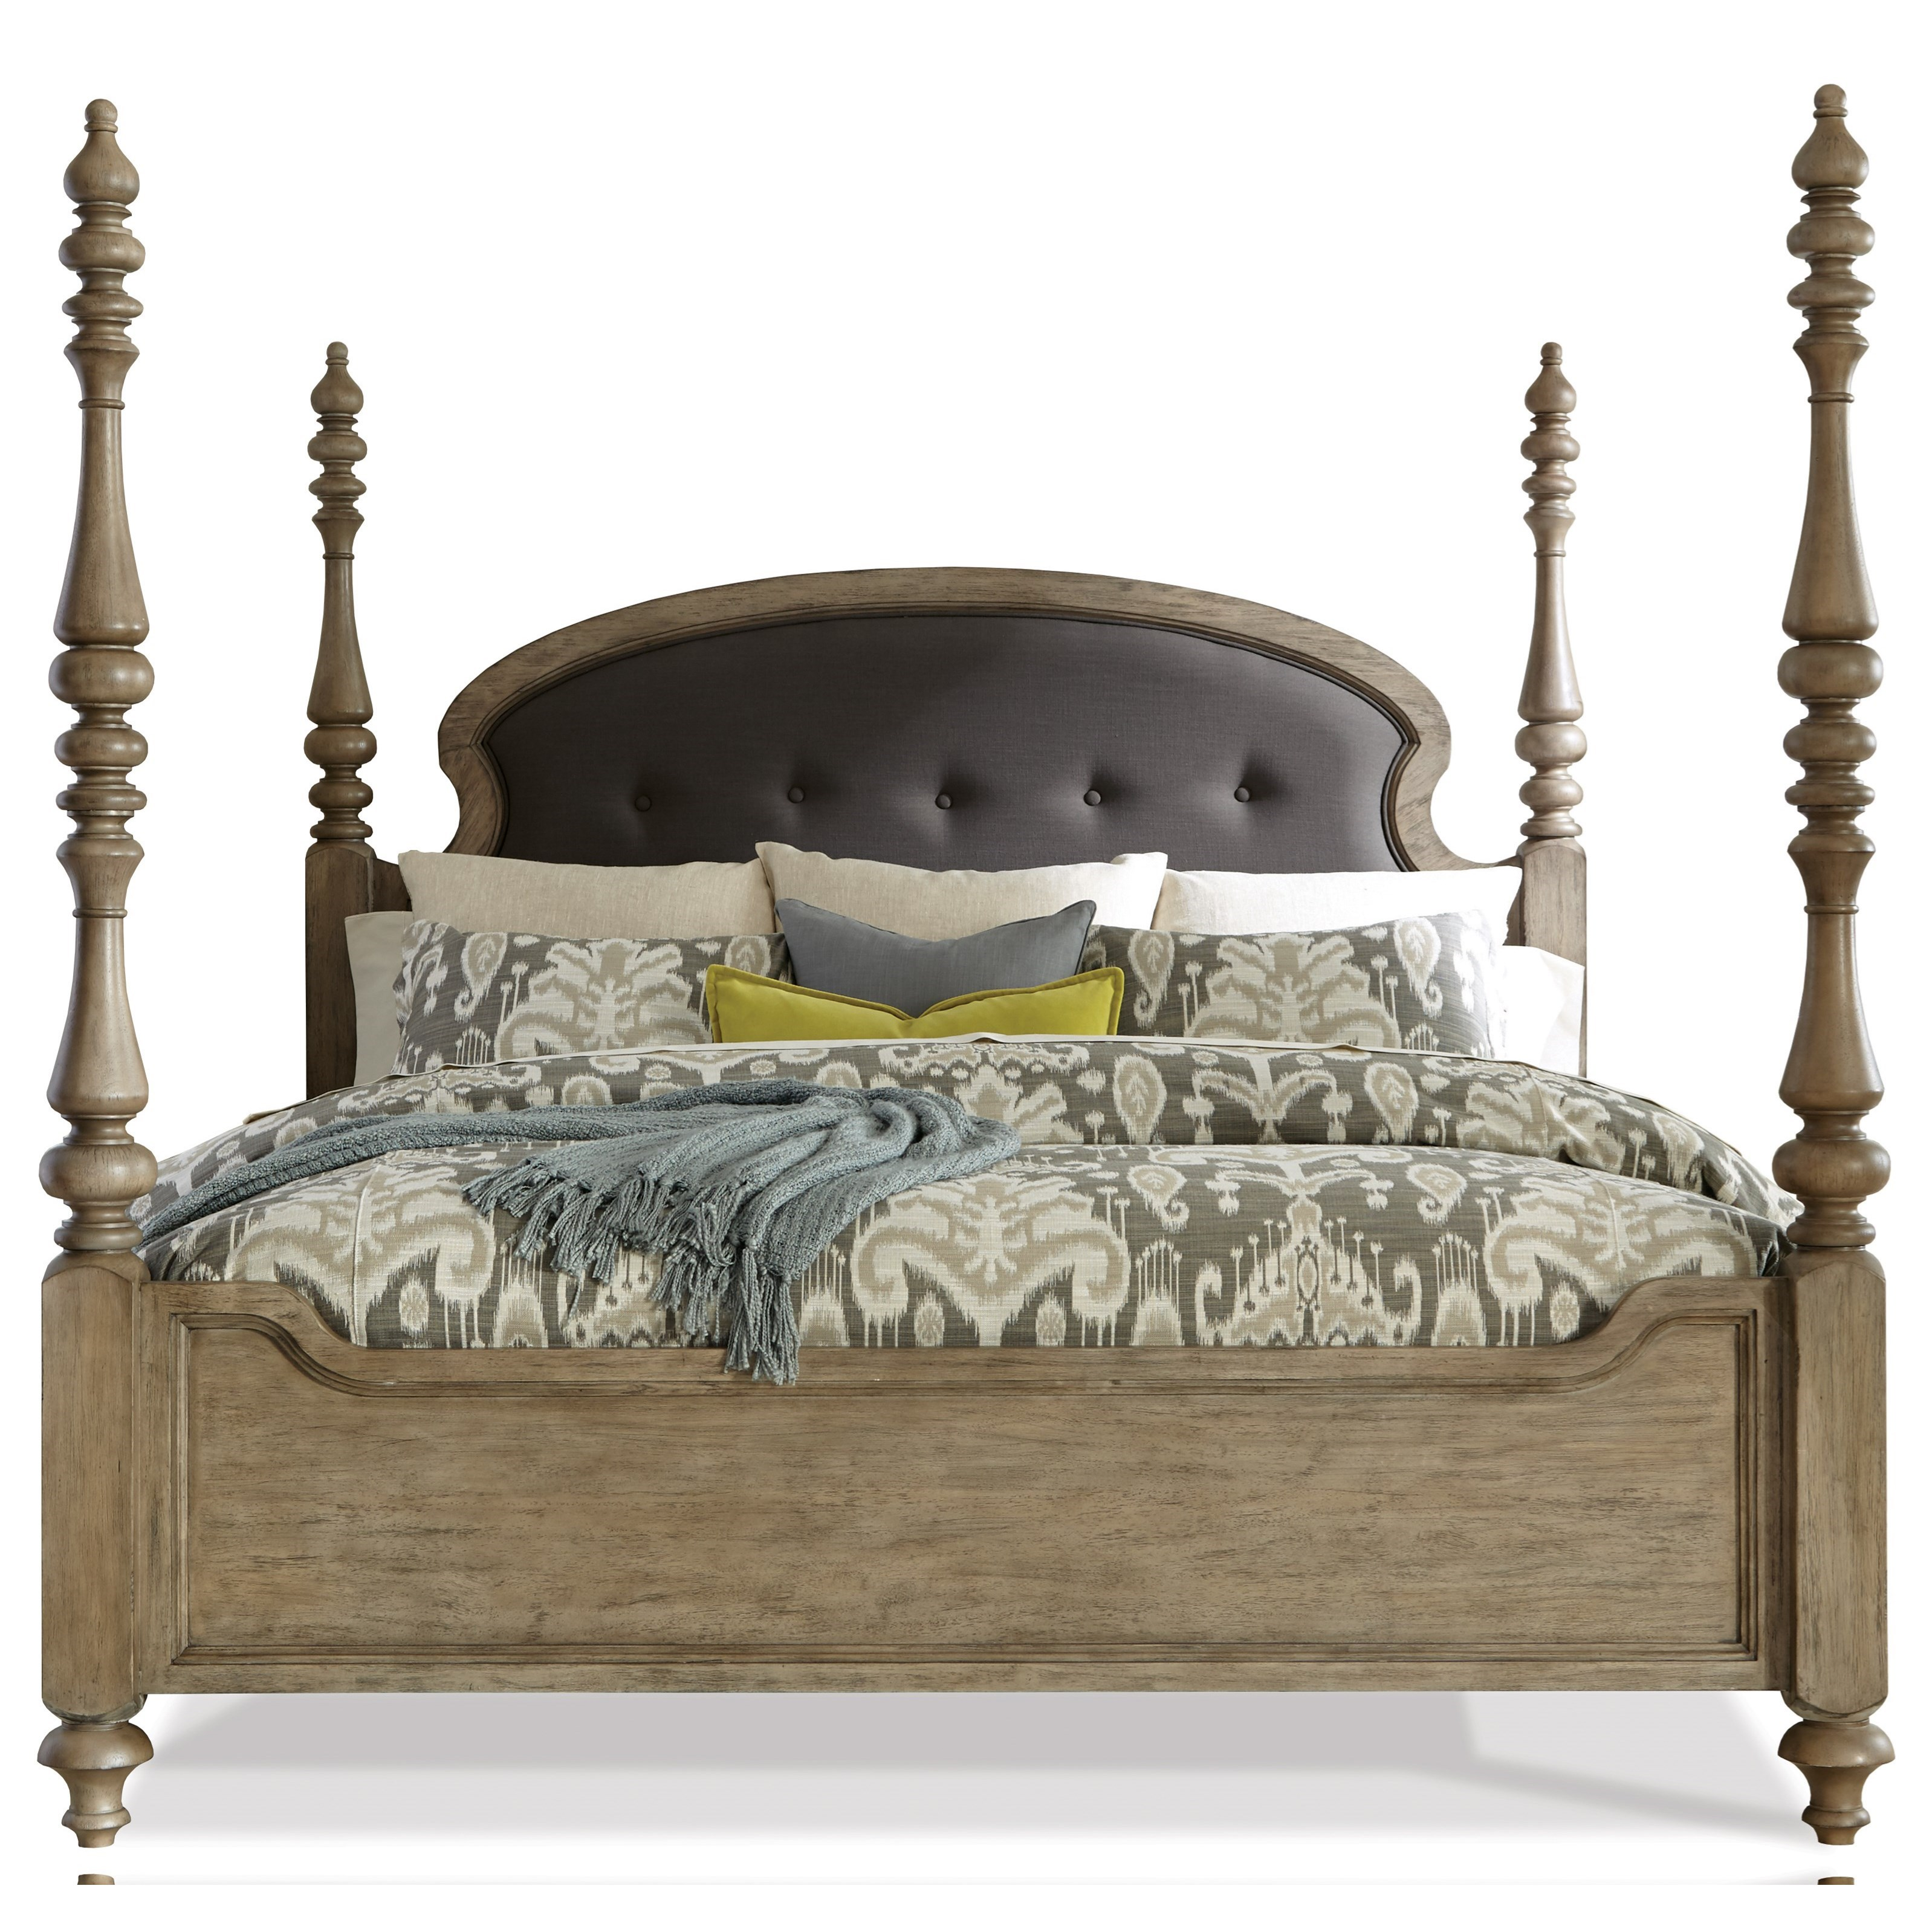 Queen Upholstered Poster Bed In Sun-Drenched Acacia Finish